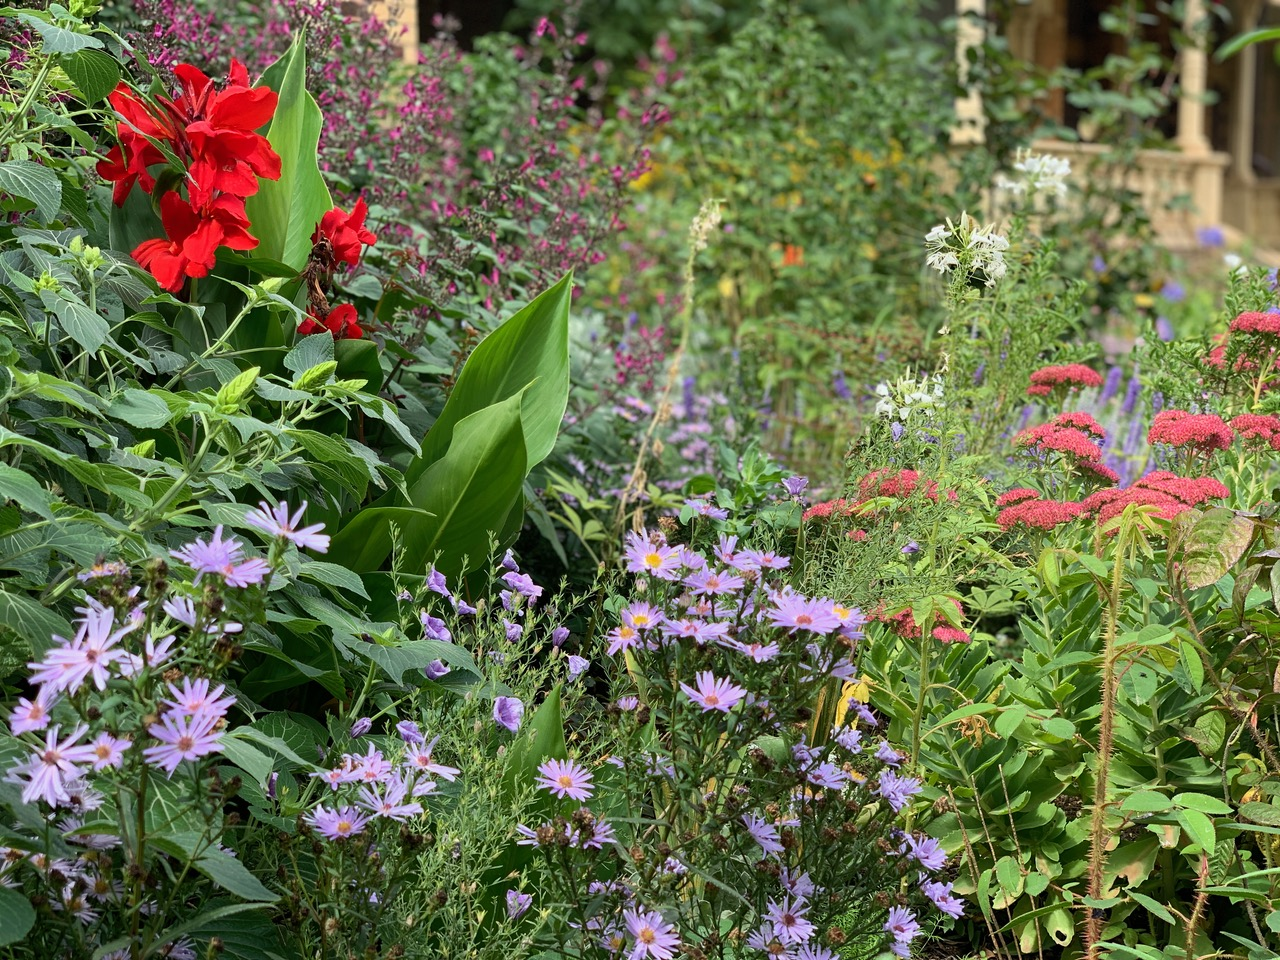 Passion for perennials competition - winner announced!